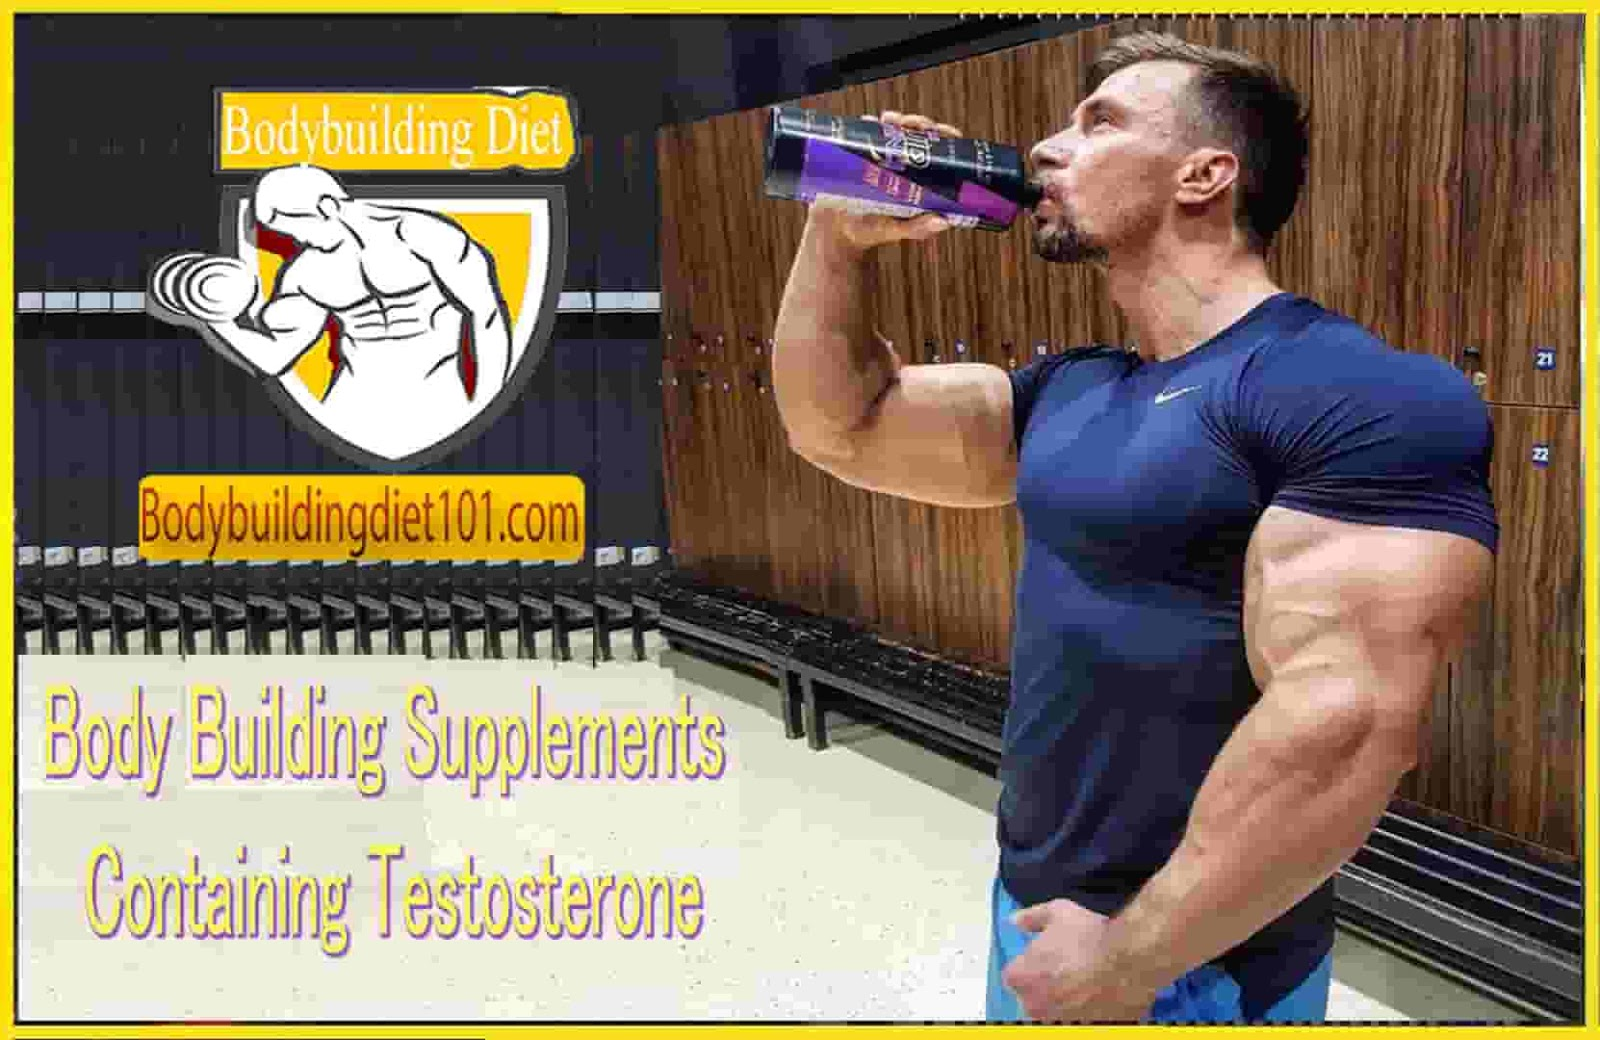 Body Building Supplements Containing Testosterone